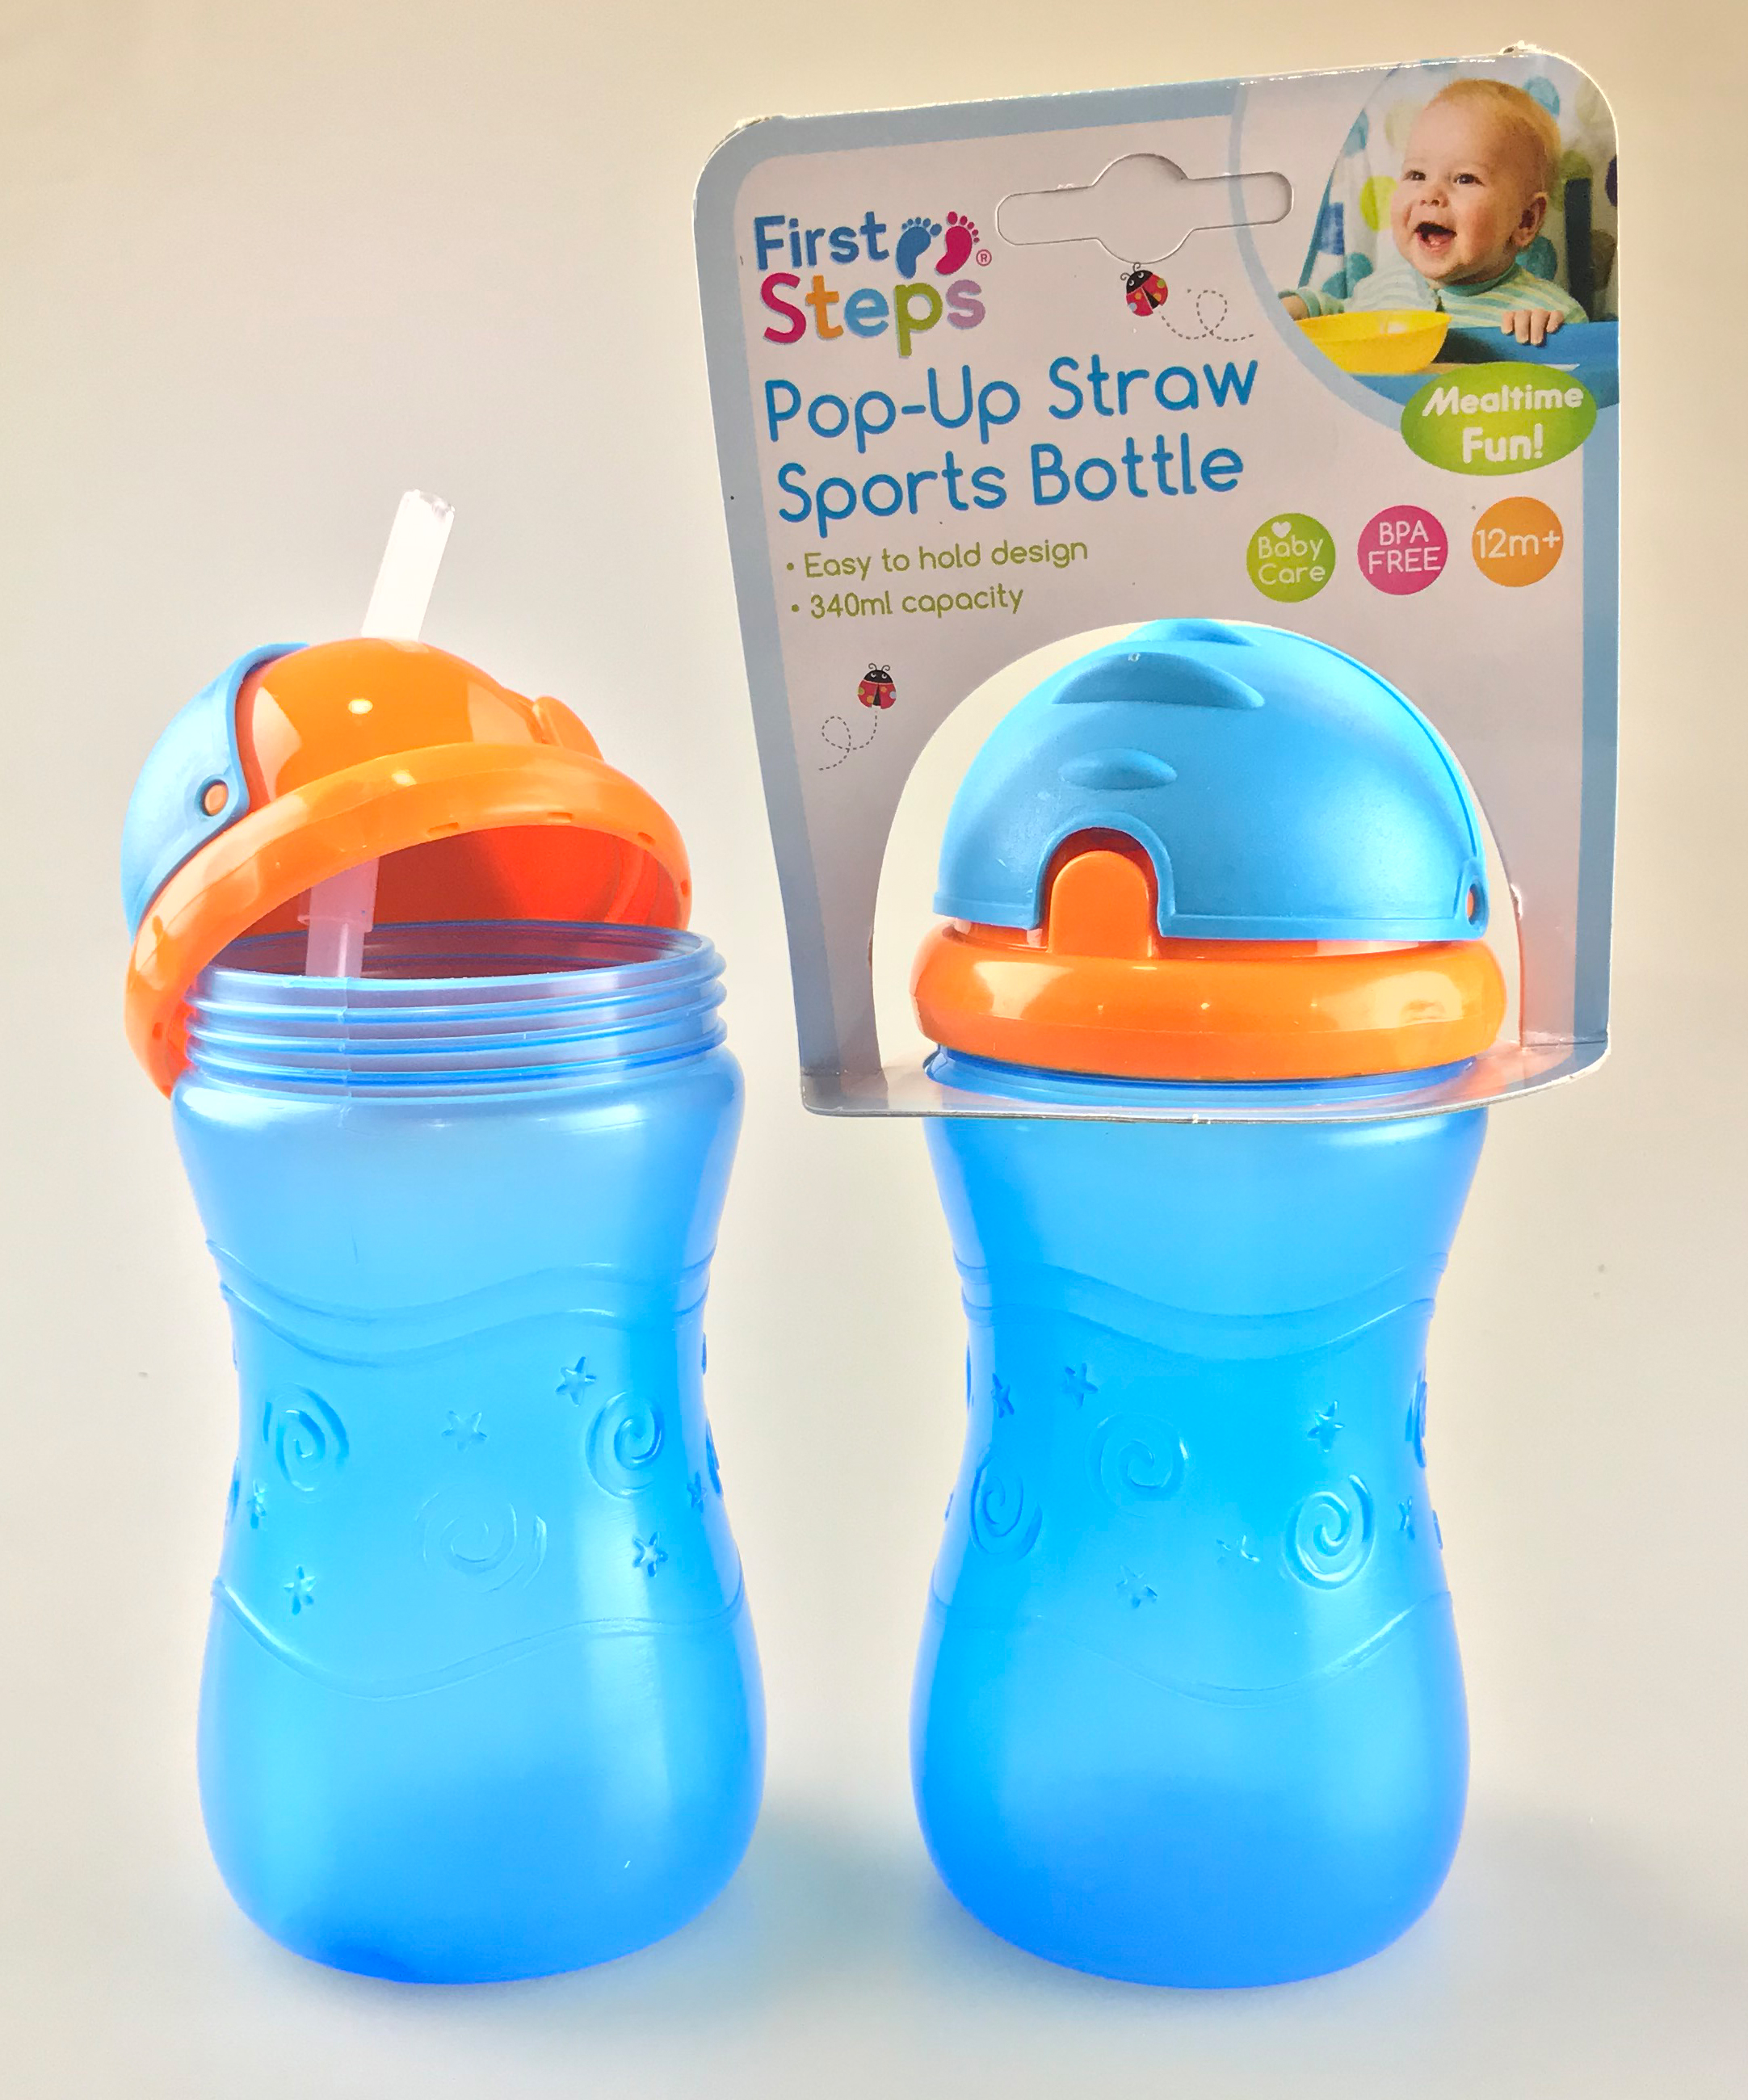 First Steps 2 X Drinks Bottles With Pop Up Straw For Water Juice Us Baby Sport Bottle 310ml Green